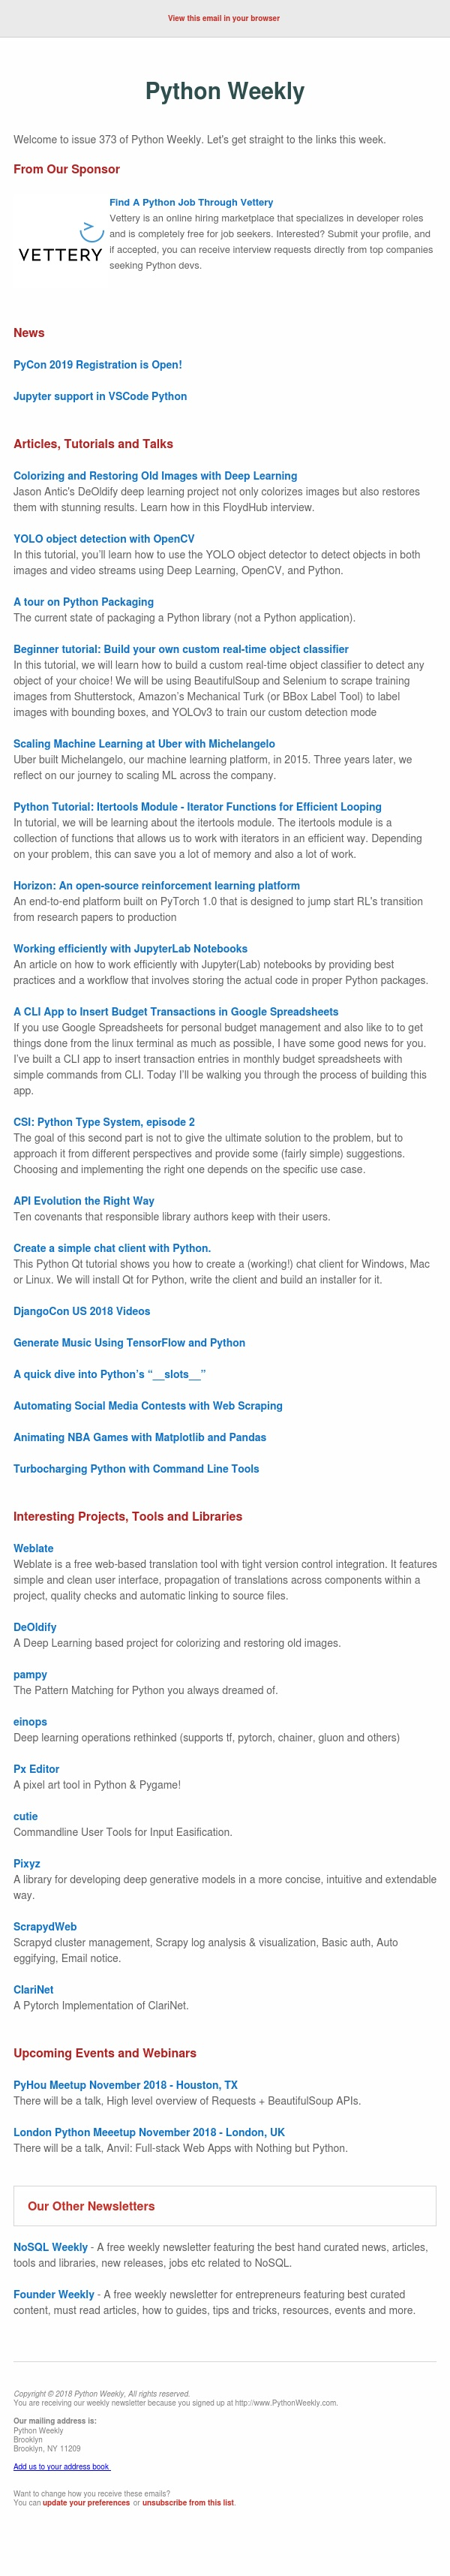 Python Weekly - Issue 373